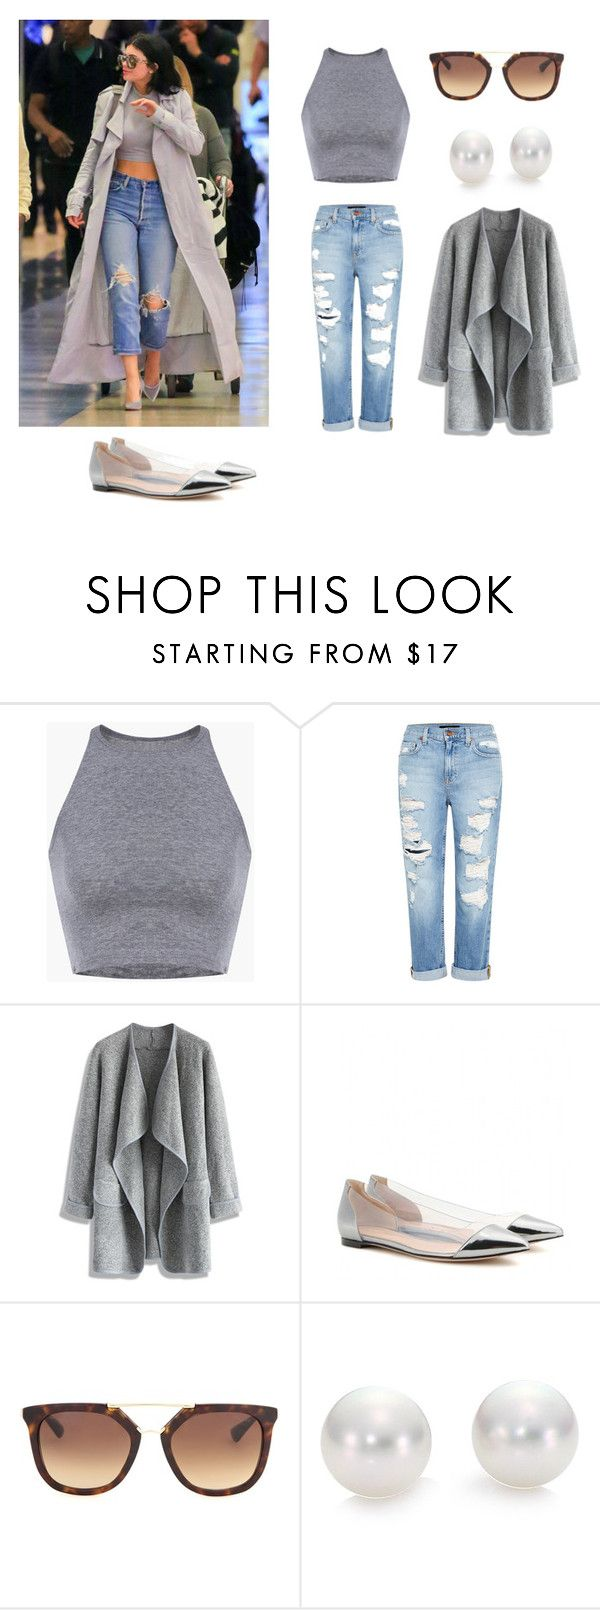 """""""Kylie jenner style"""" by queen-mina ❤ liked on Polyvore featuring Genetic Denim, Chicwish, Gianvito Rossi, Prada and Mikimoto"""